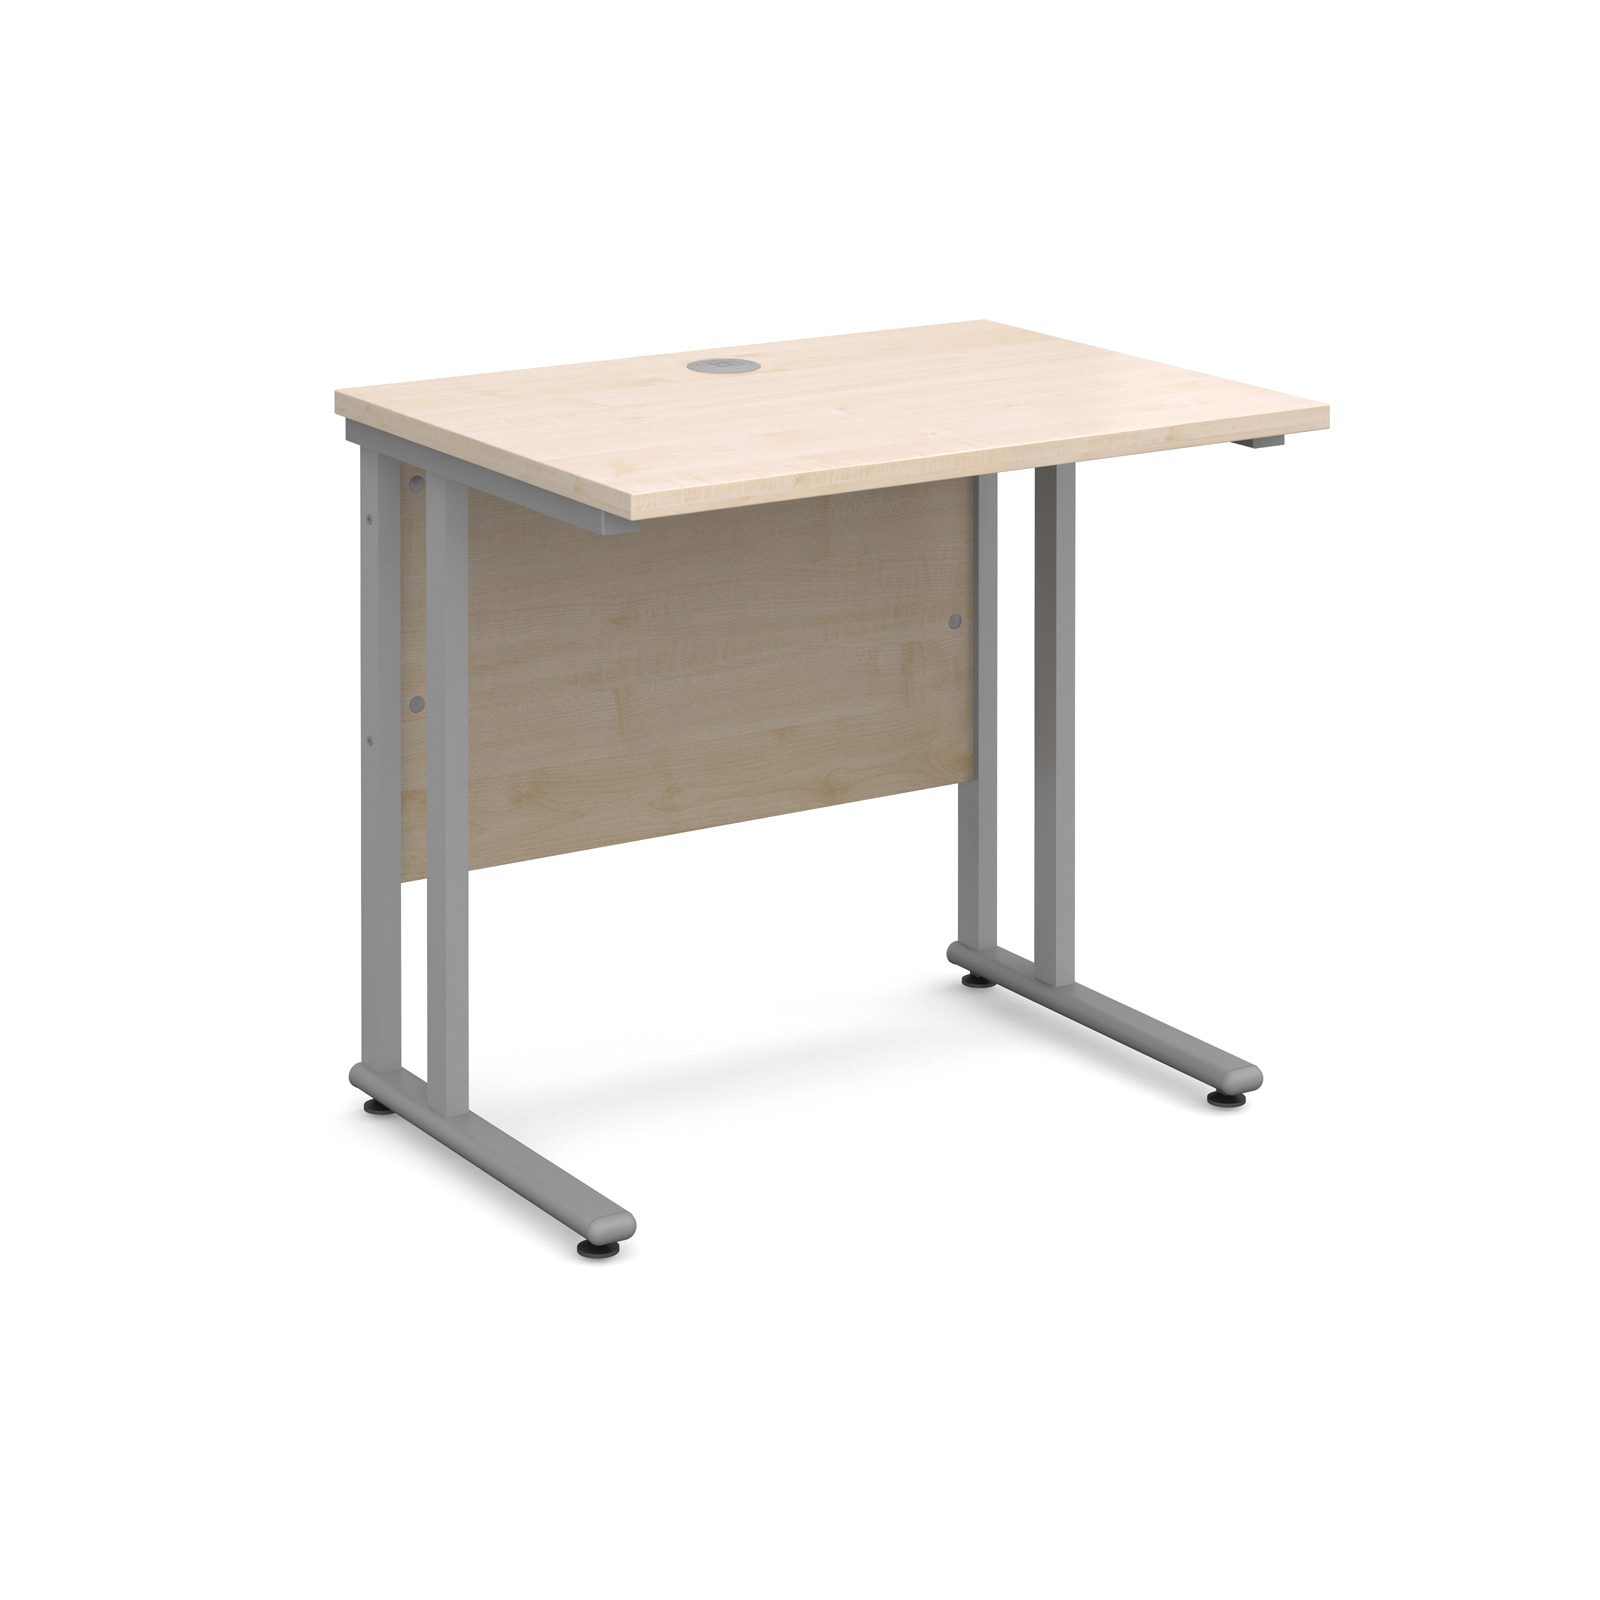 Dams Maestro 25 SL Maple Desk | Straight 600 Deep